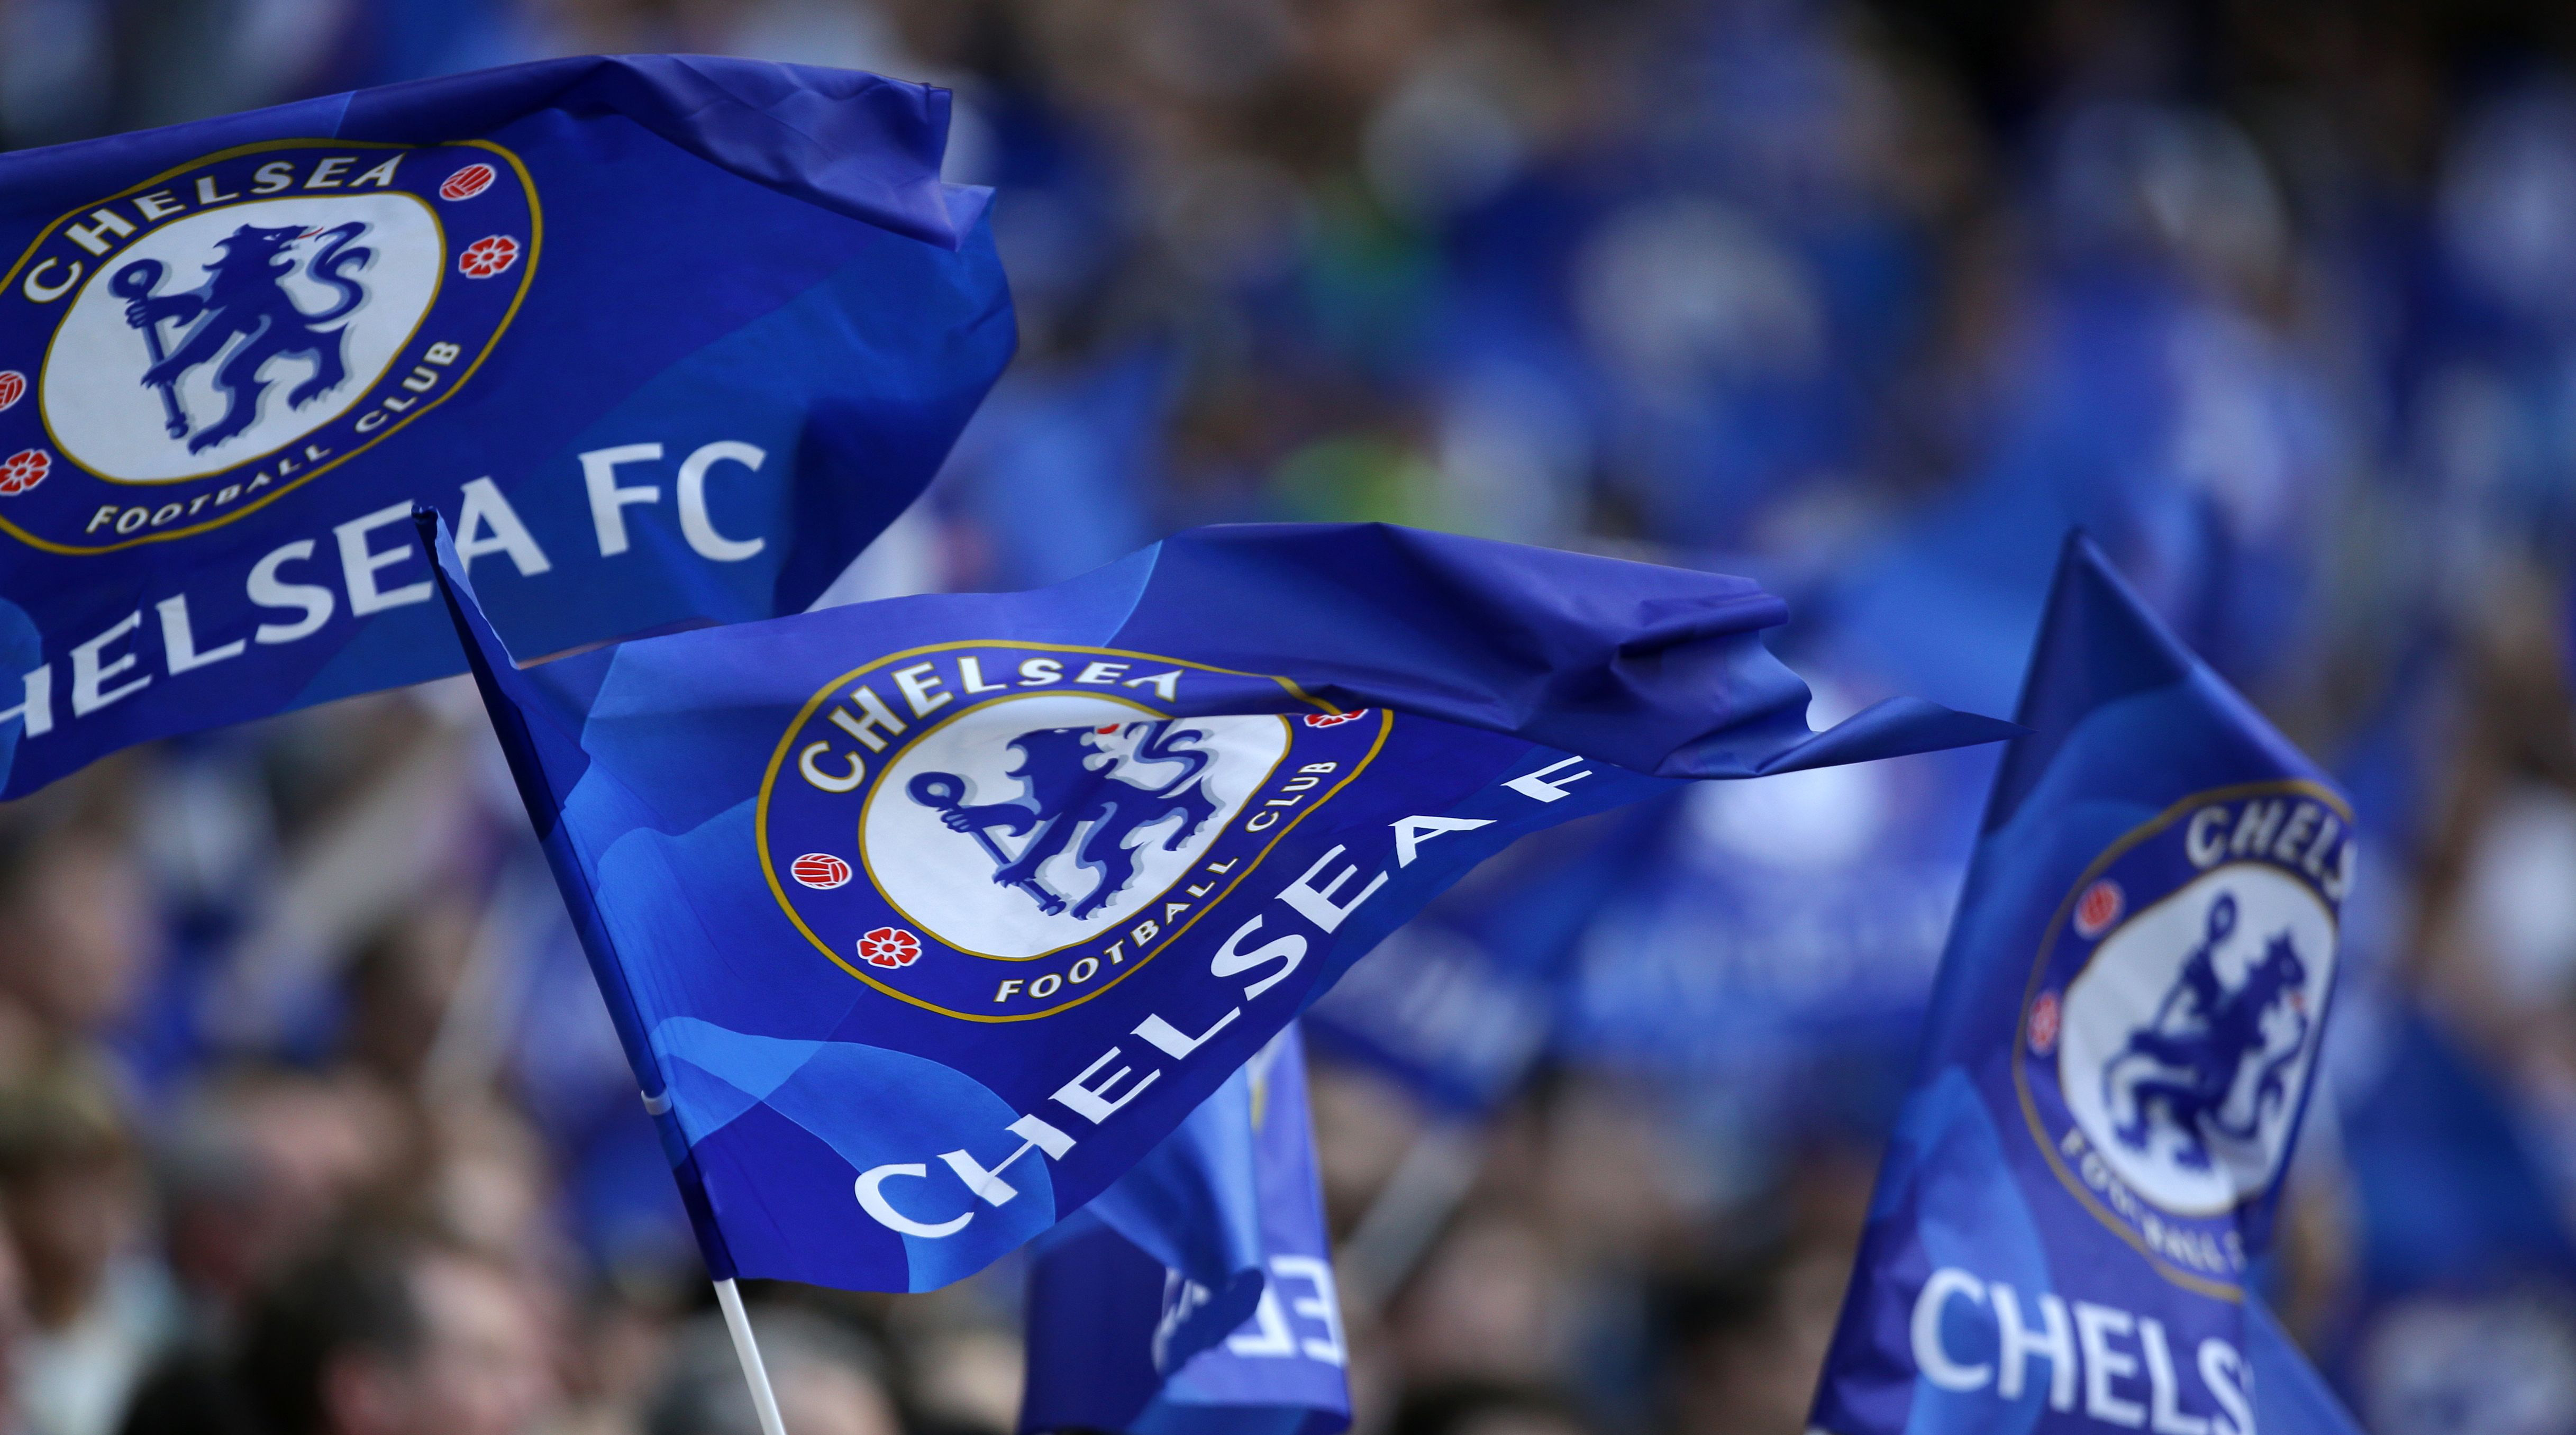 Chelsea to Send Racist Fans to Visit Auschwitz Instead of Banning Them From Matches